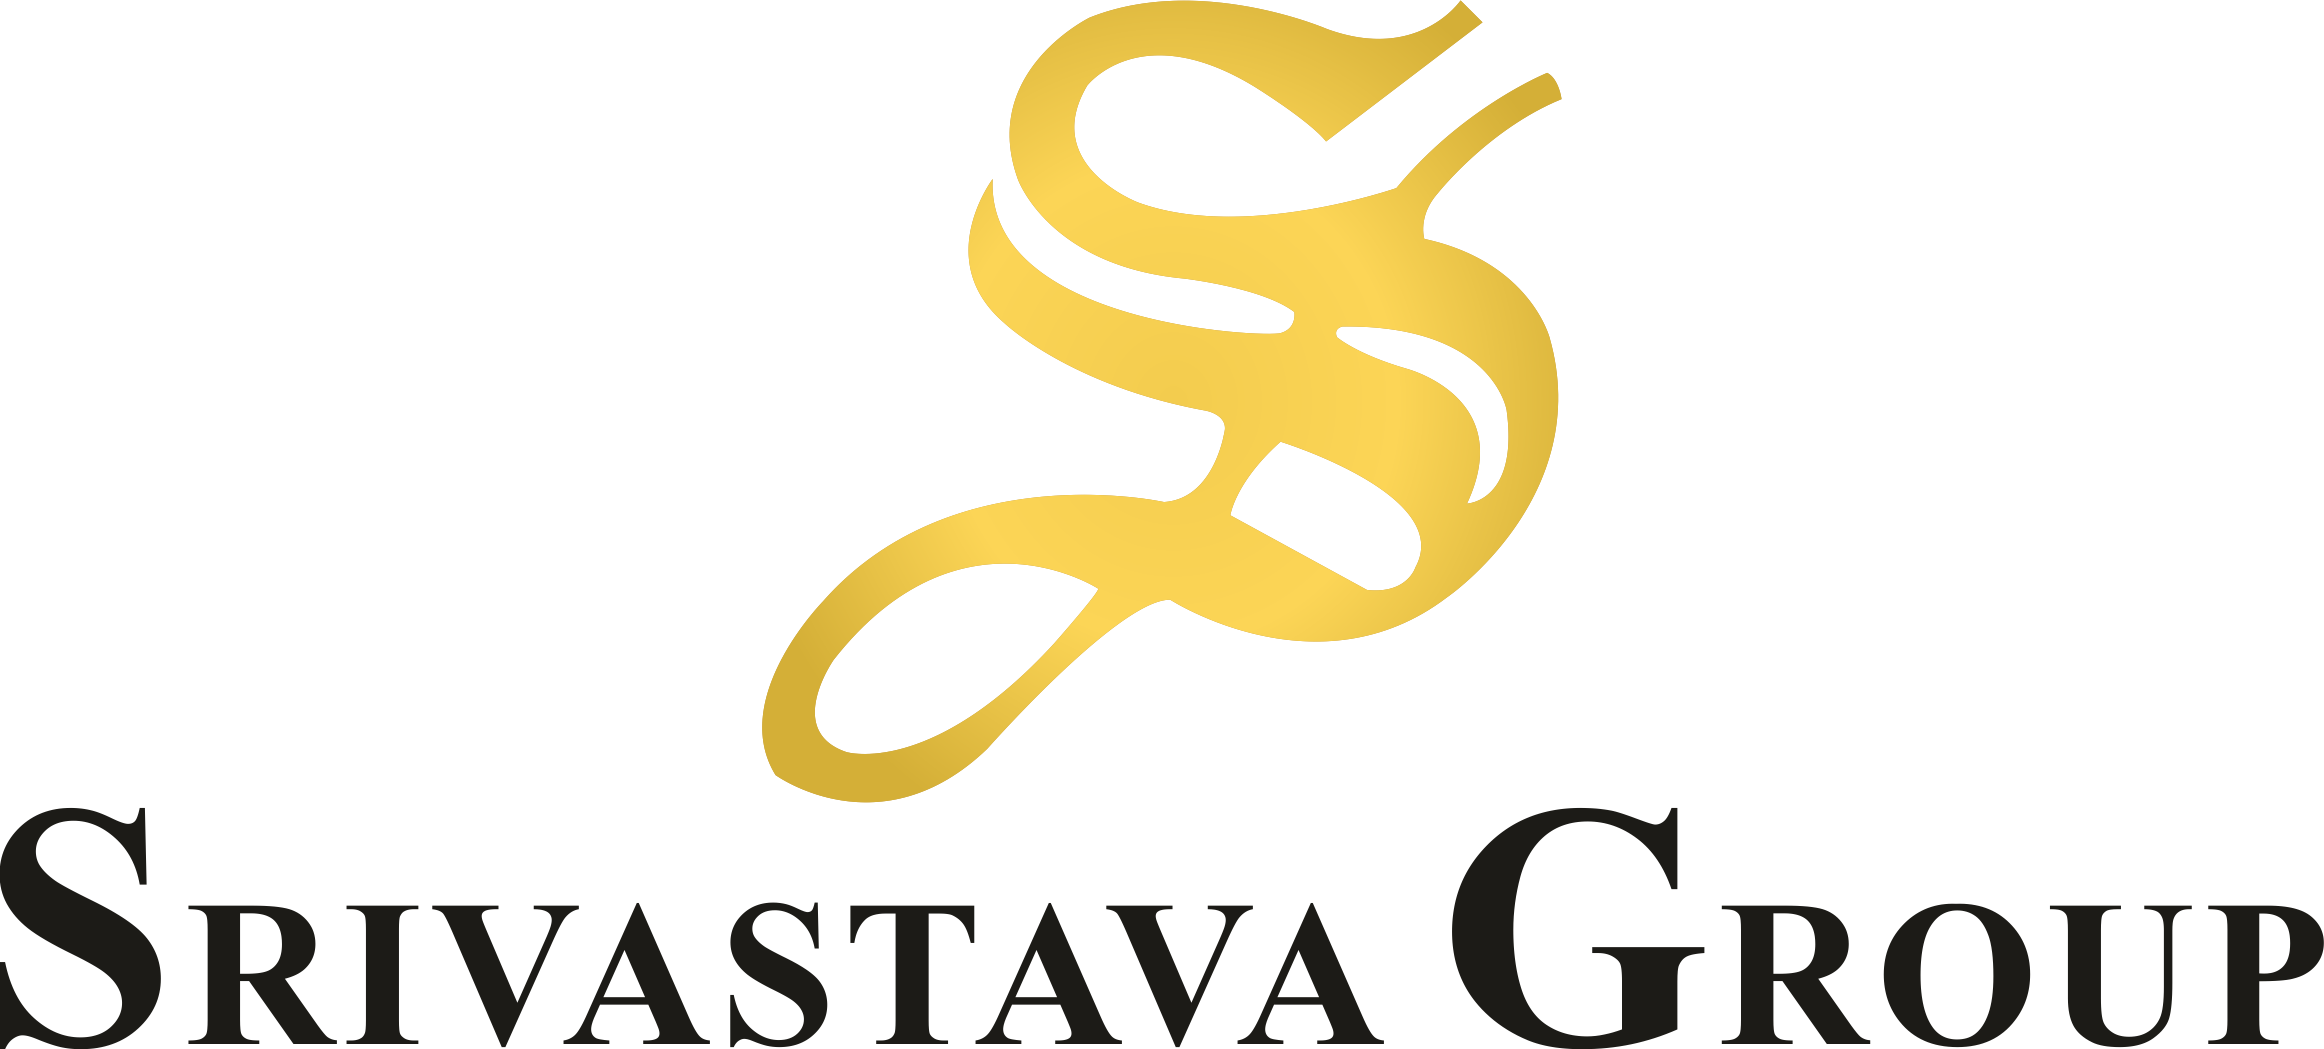 Srivastava Group